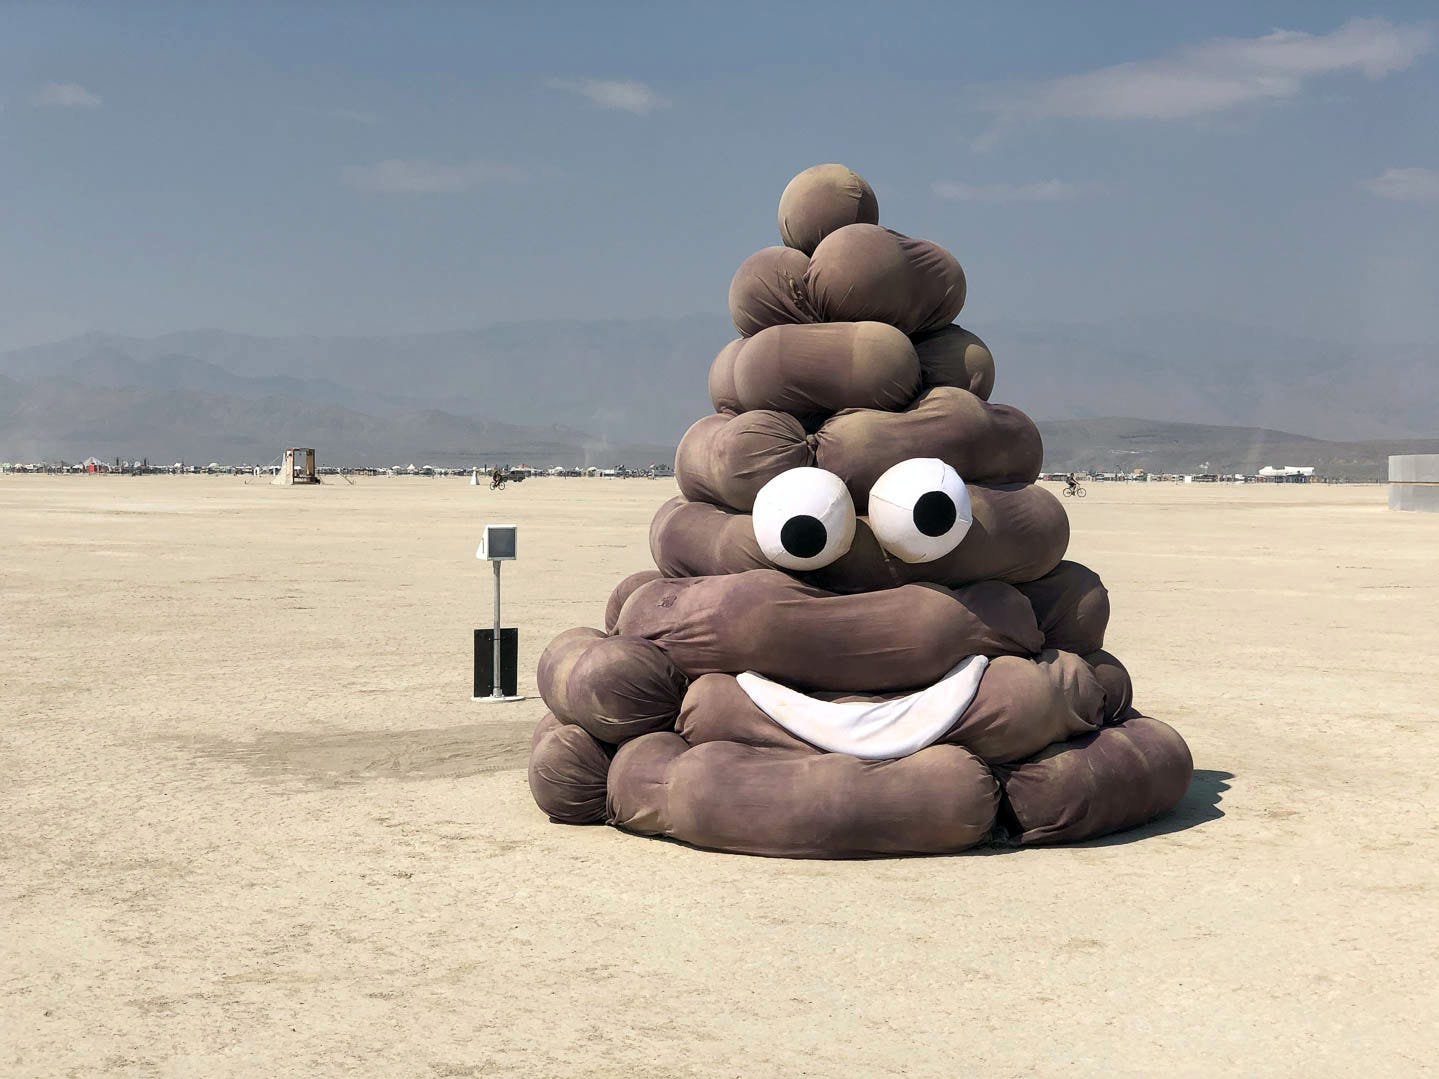 A large poop emoji is in the deep playa near the trash fence at Burning Man 2018.